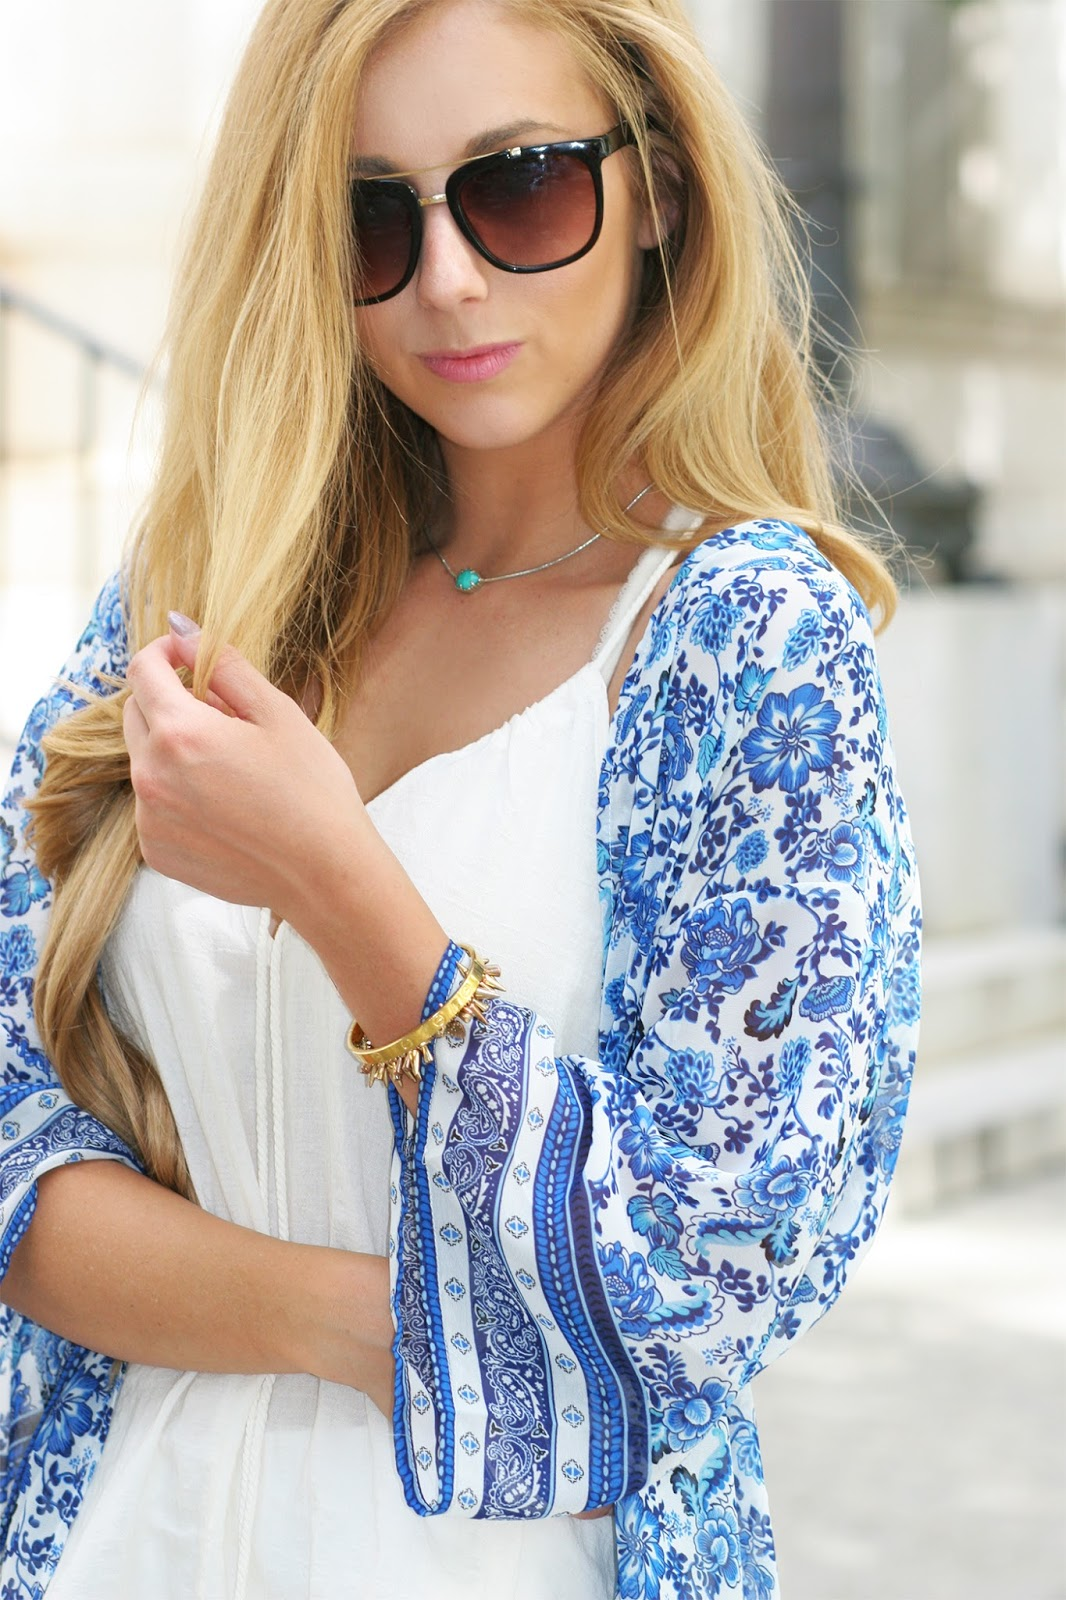 Summer-accessories-street-style-bracelet-layers-Kendra-scott